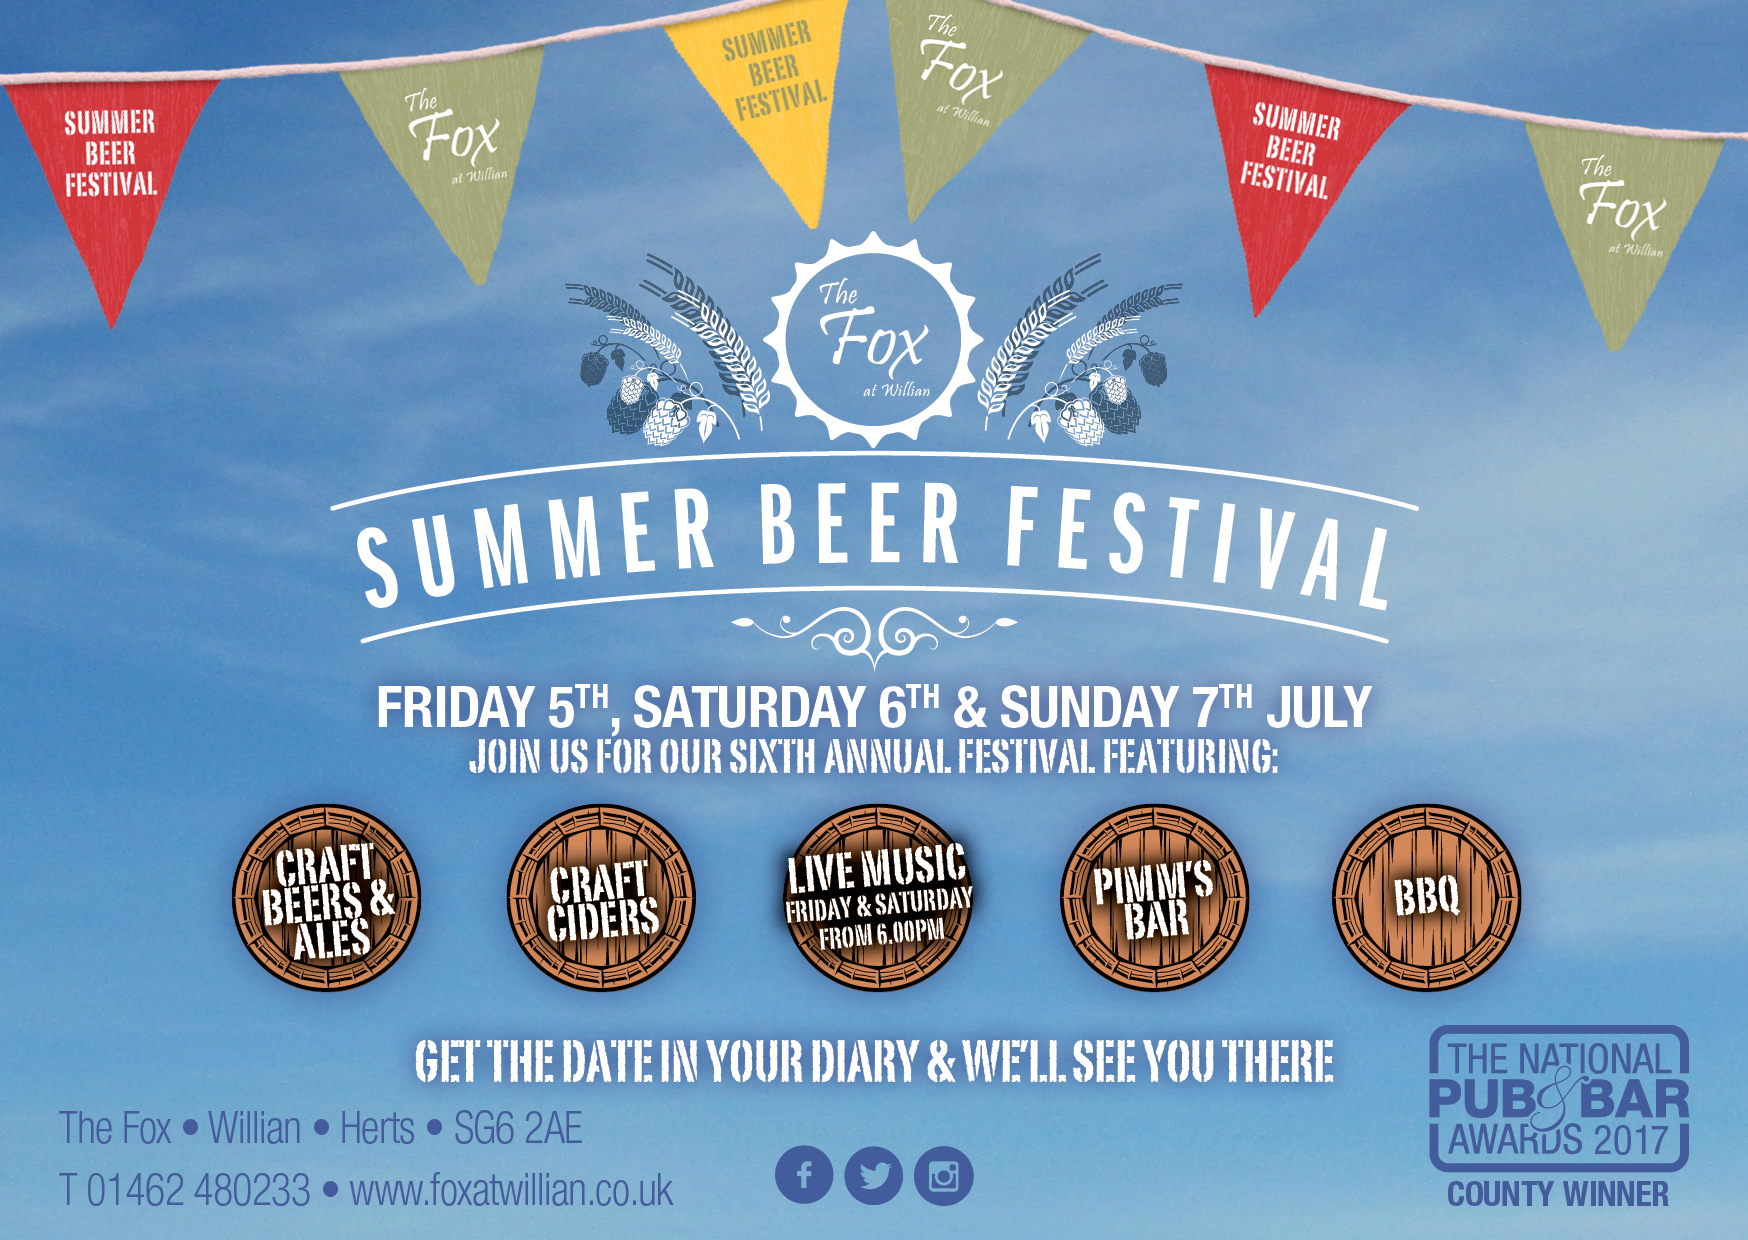 The 6th Annual Fox Summer Beer festival